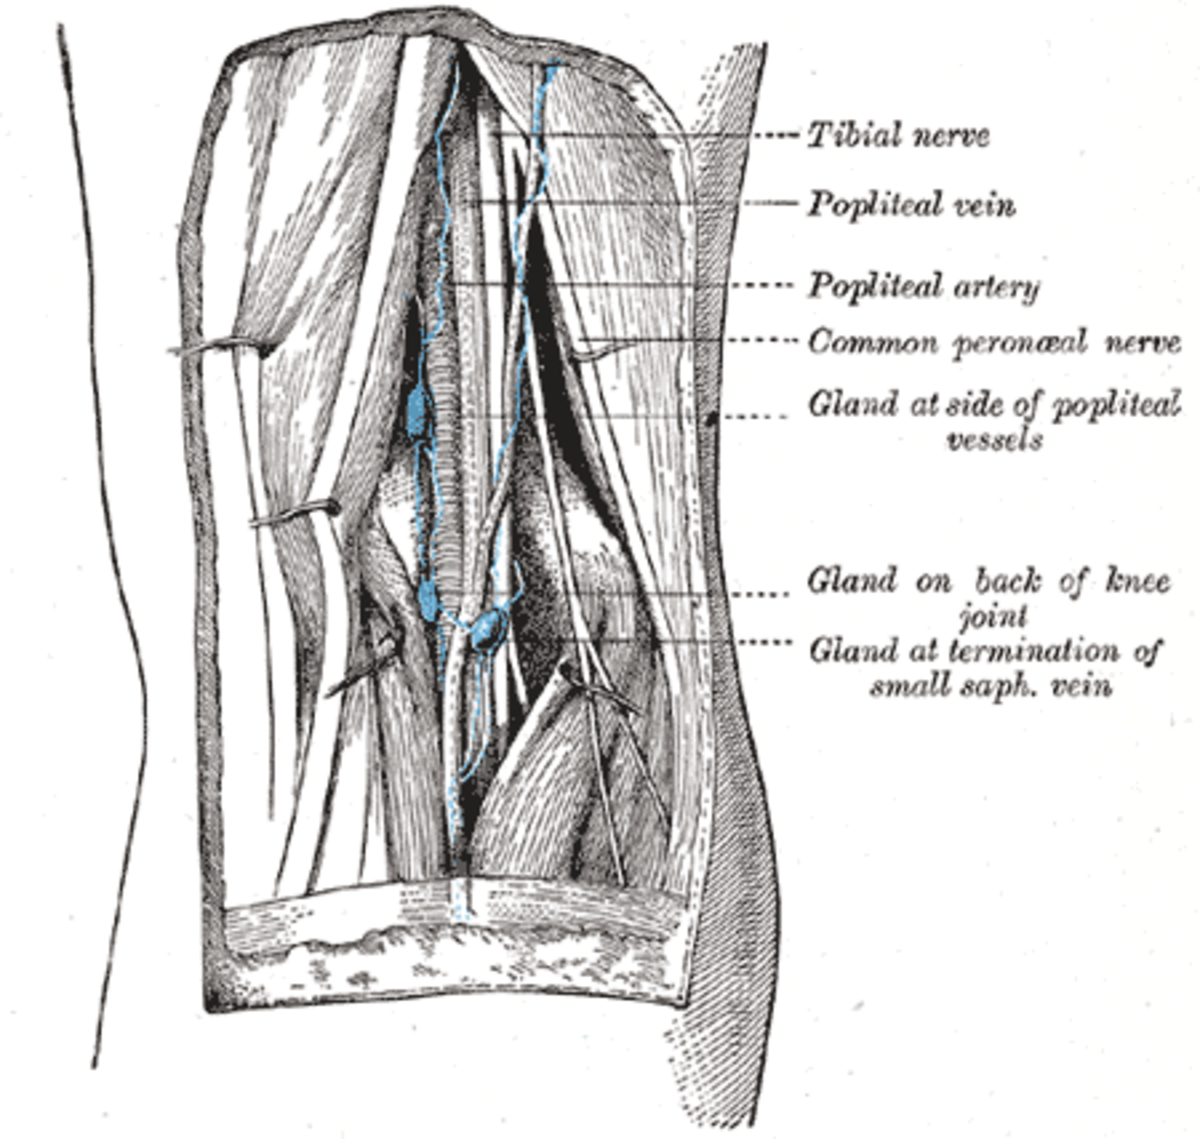 Popliteal Aneurysm Surgery - How It Works & Recovery